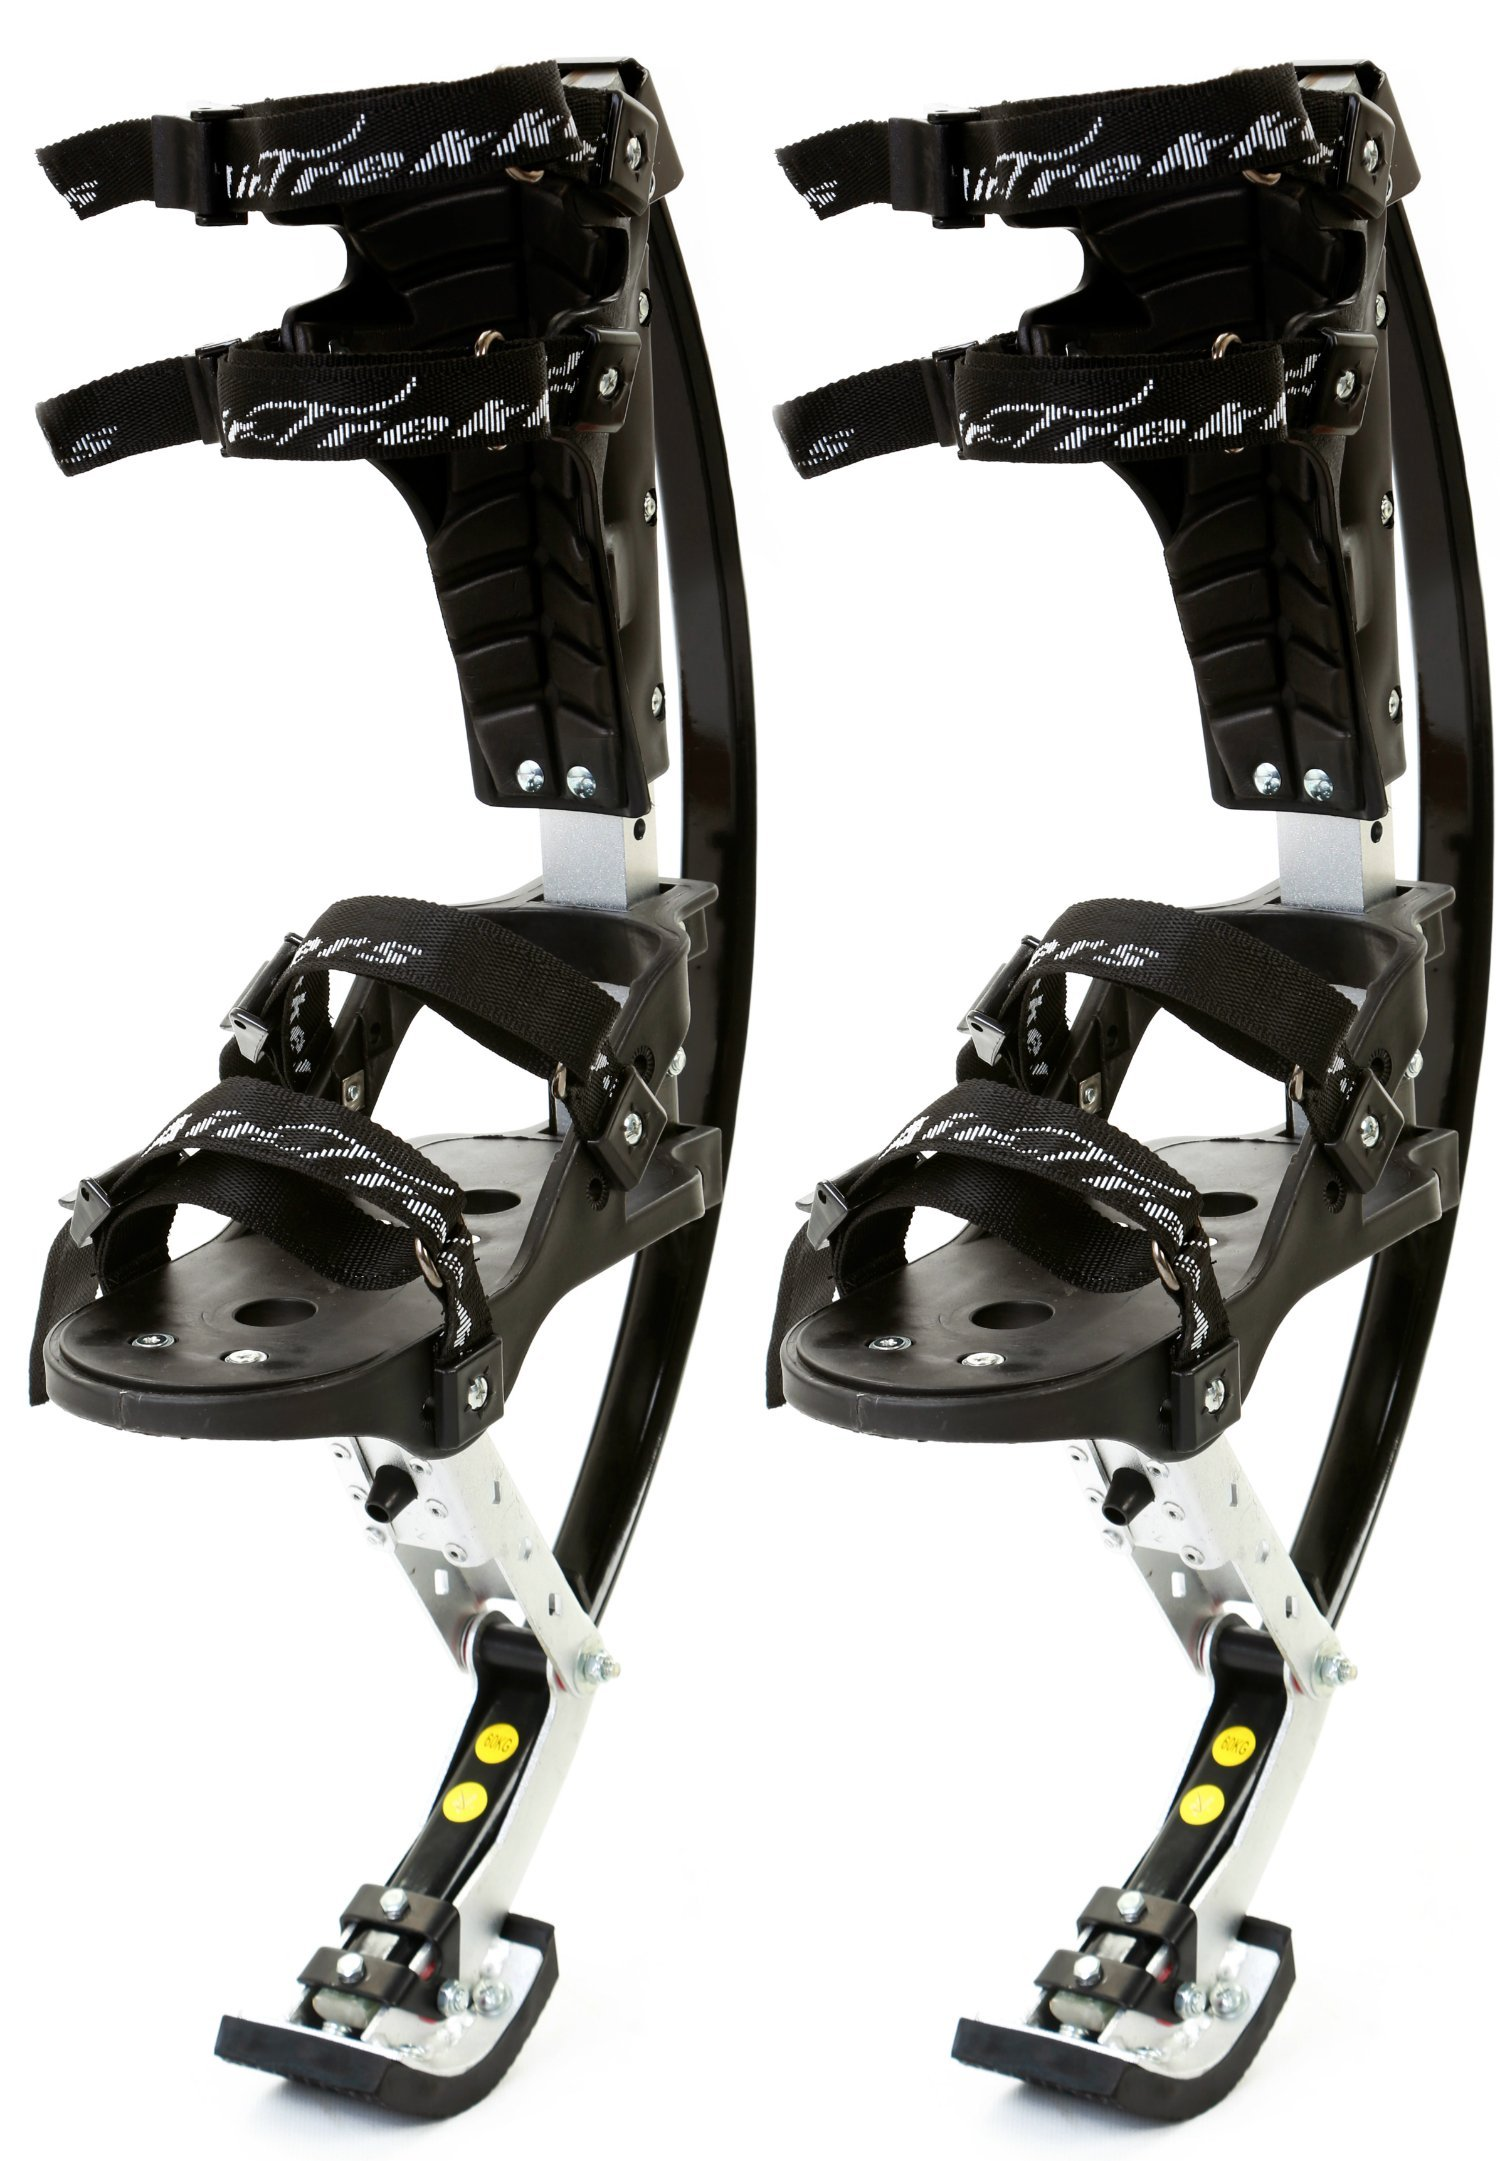 KIDS JUMPING STILTS by AIR TREKKERS Spring Loaded JUMP SHOES are Cool Gifts for Kids Ages 8-12 Develop Valuable Athletic Motor Skills! BOUNCE SHOES FOR KIDS with PROTECTION PADS and Cloth KNEE SUPPORT by Air-Trekkers (Image #1)